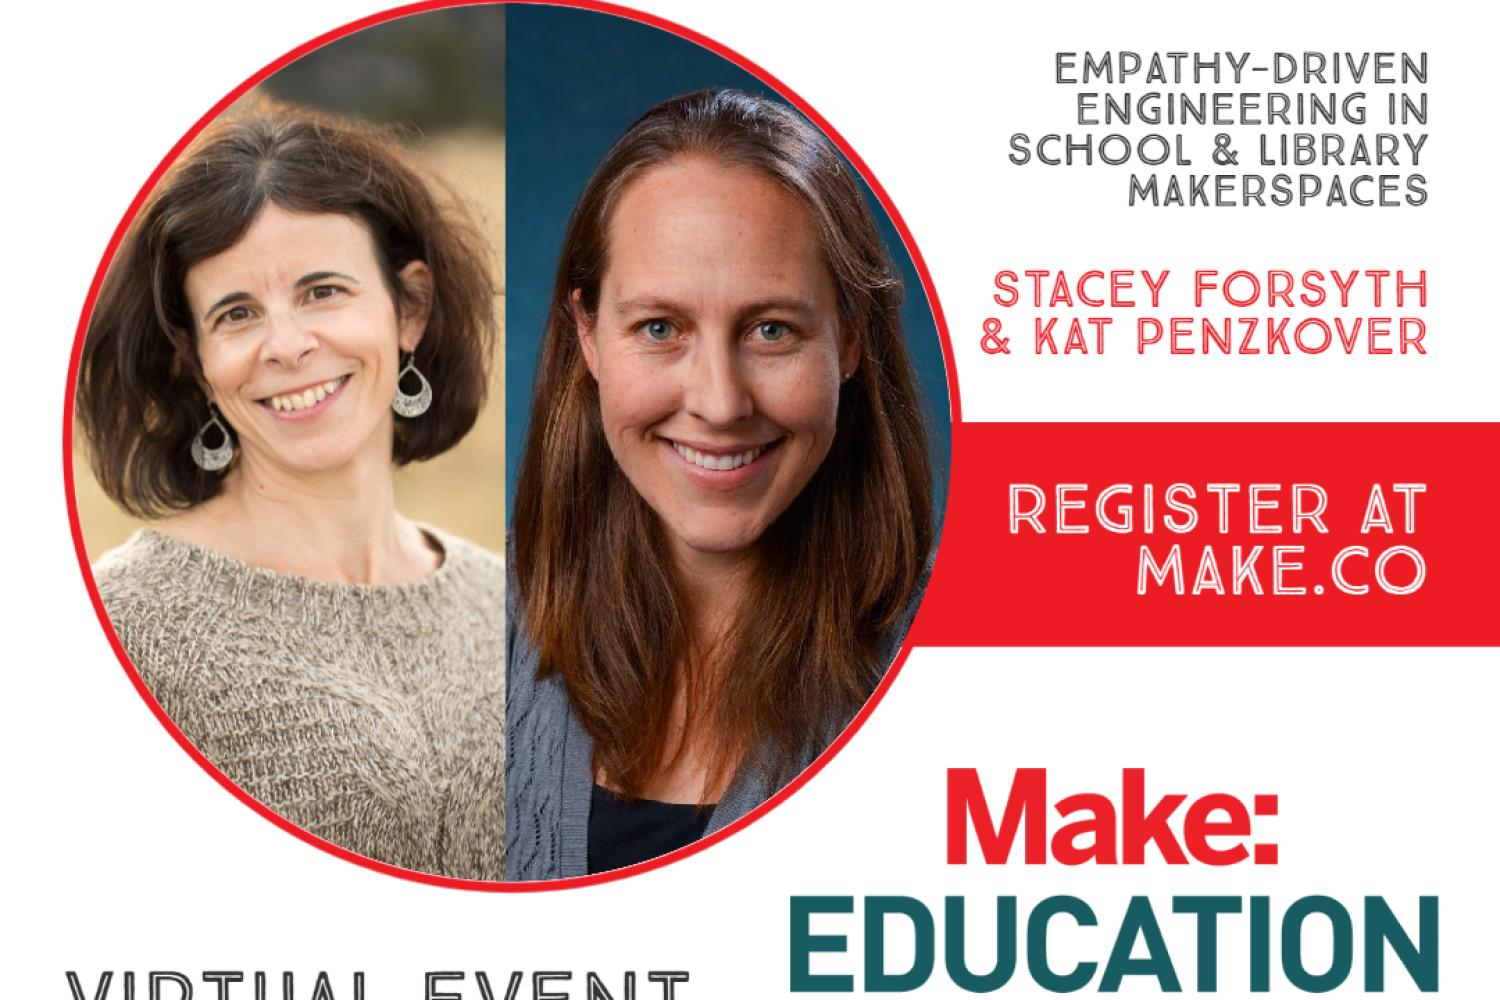 stacey forsyth and kat penzkover with information about BBB session at MakerEd conference